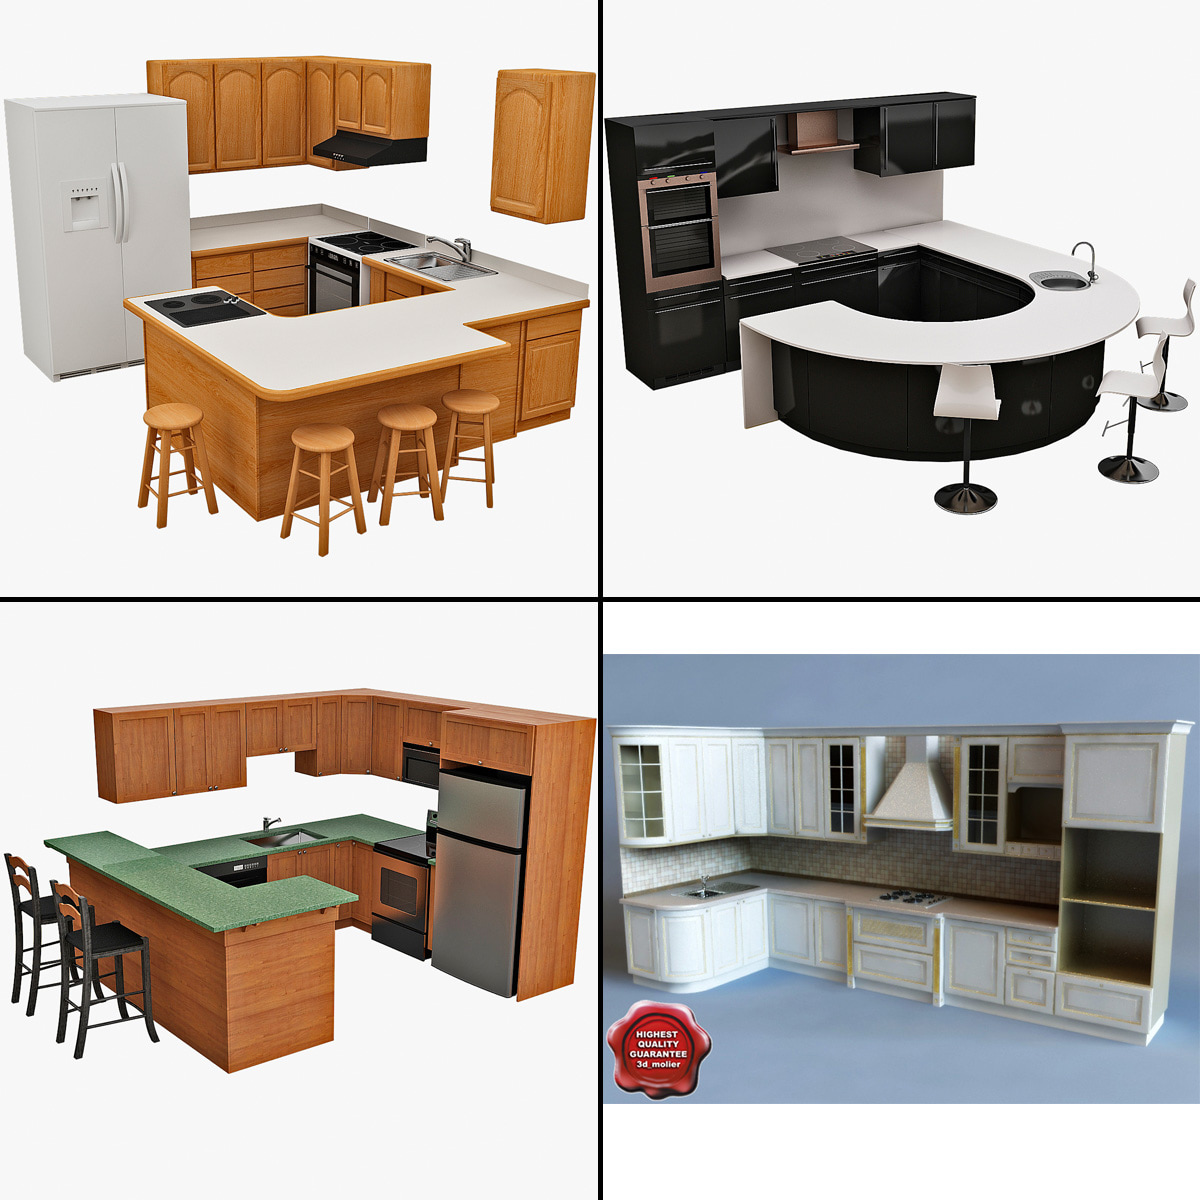 Kitchens_Collection_V2_000.jpg